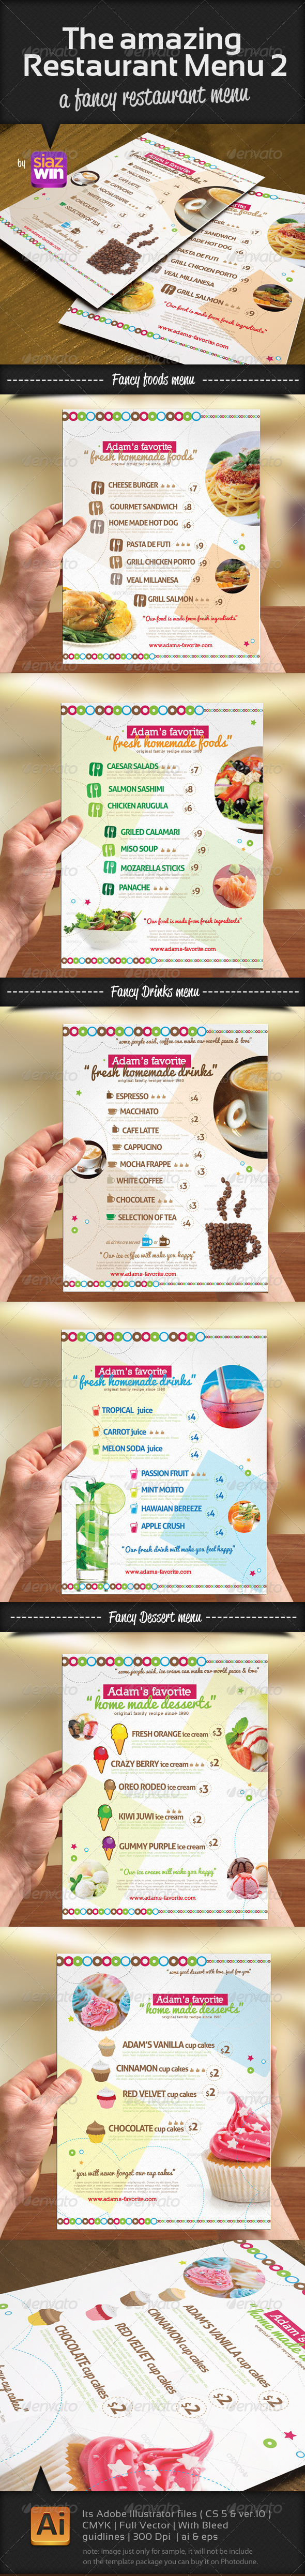 The Amazing Restaurant Menu 2 - Food Menus Print Templates